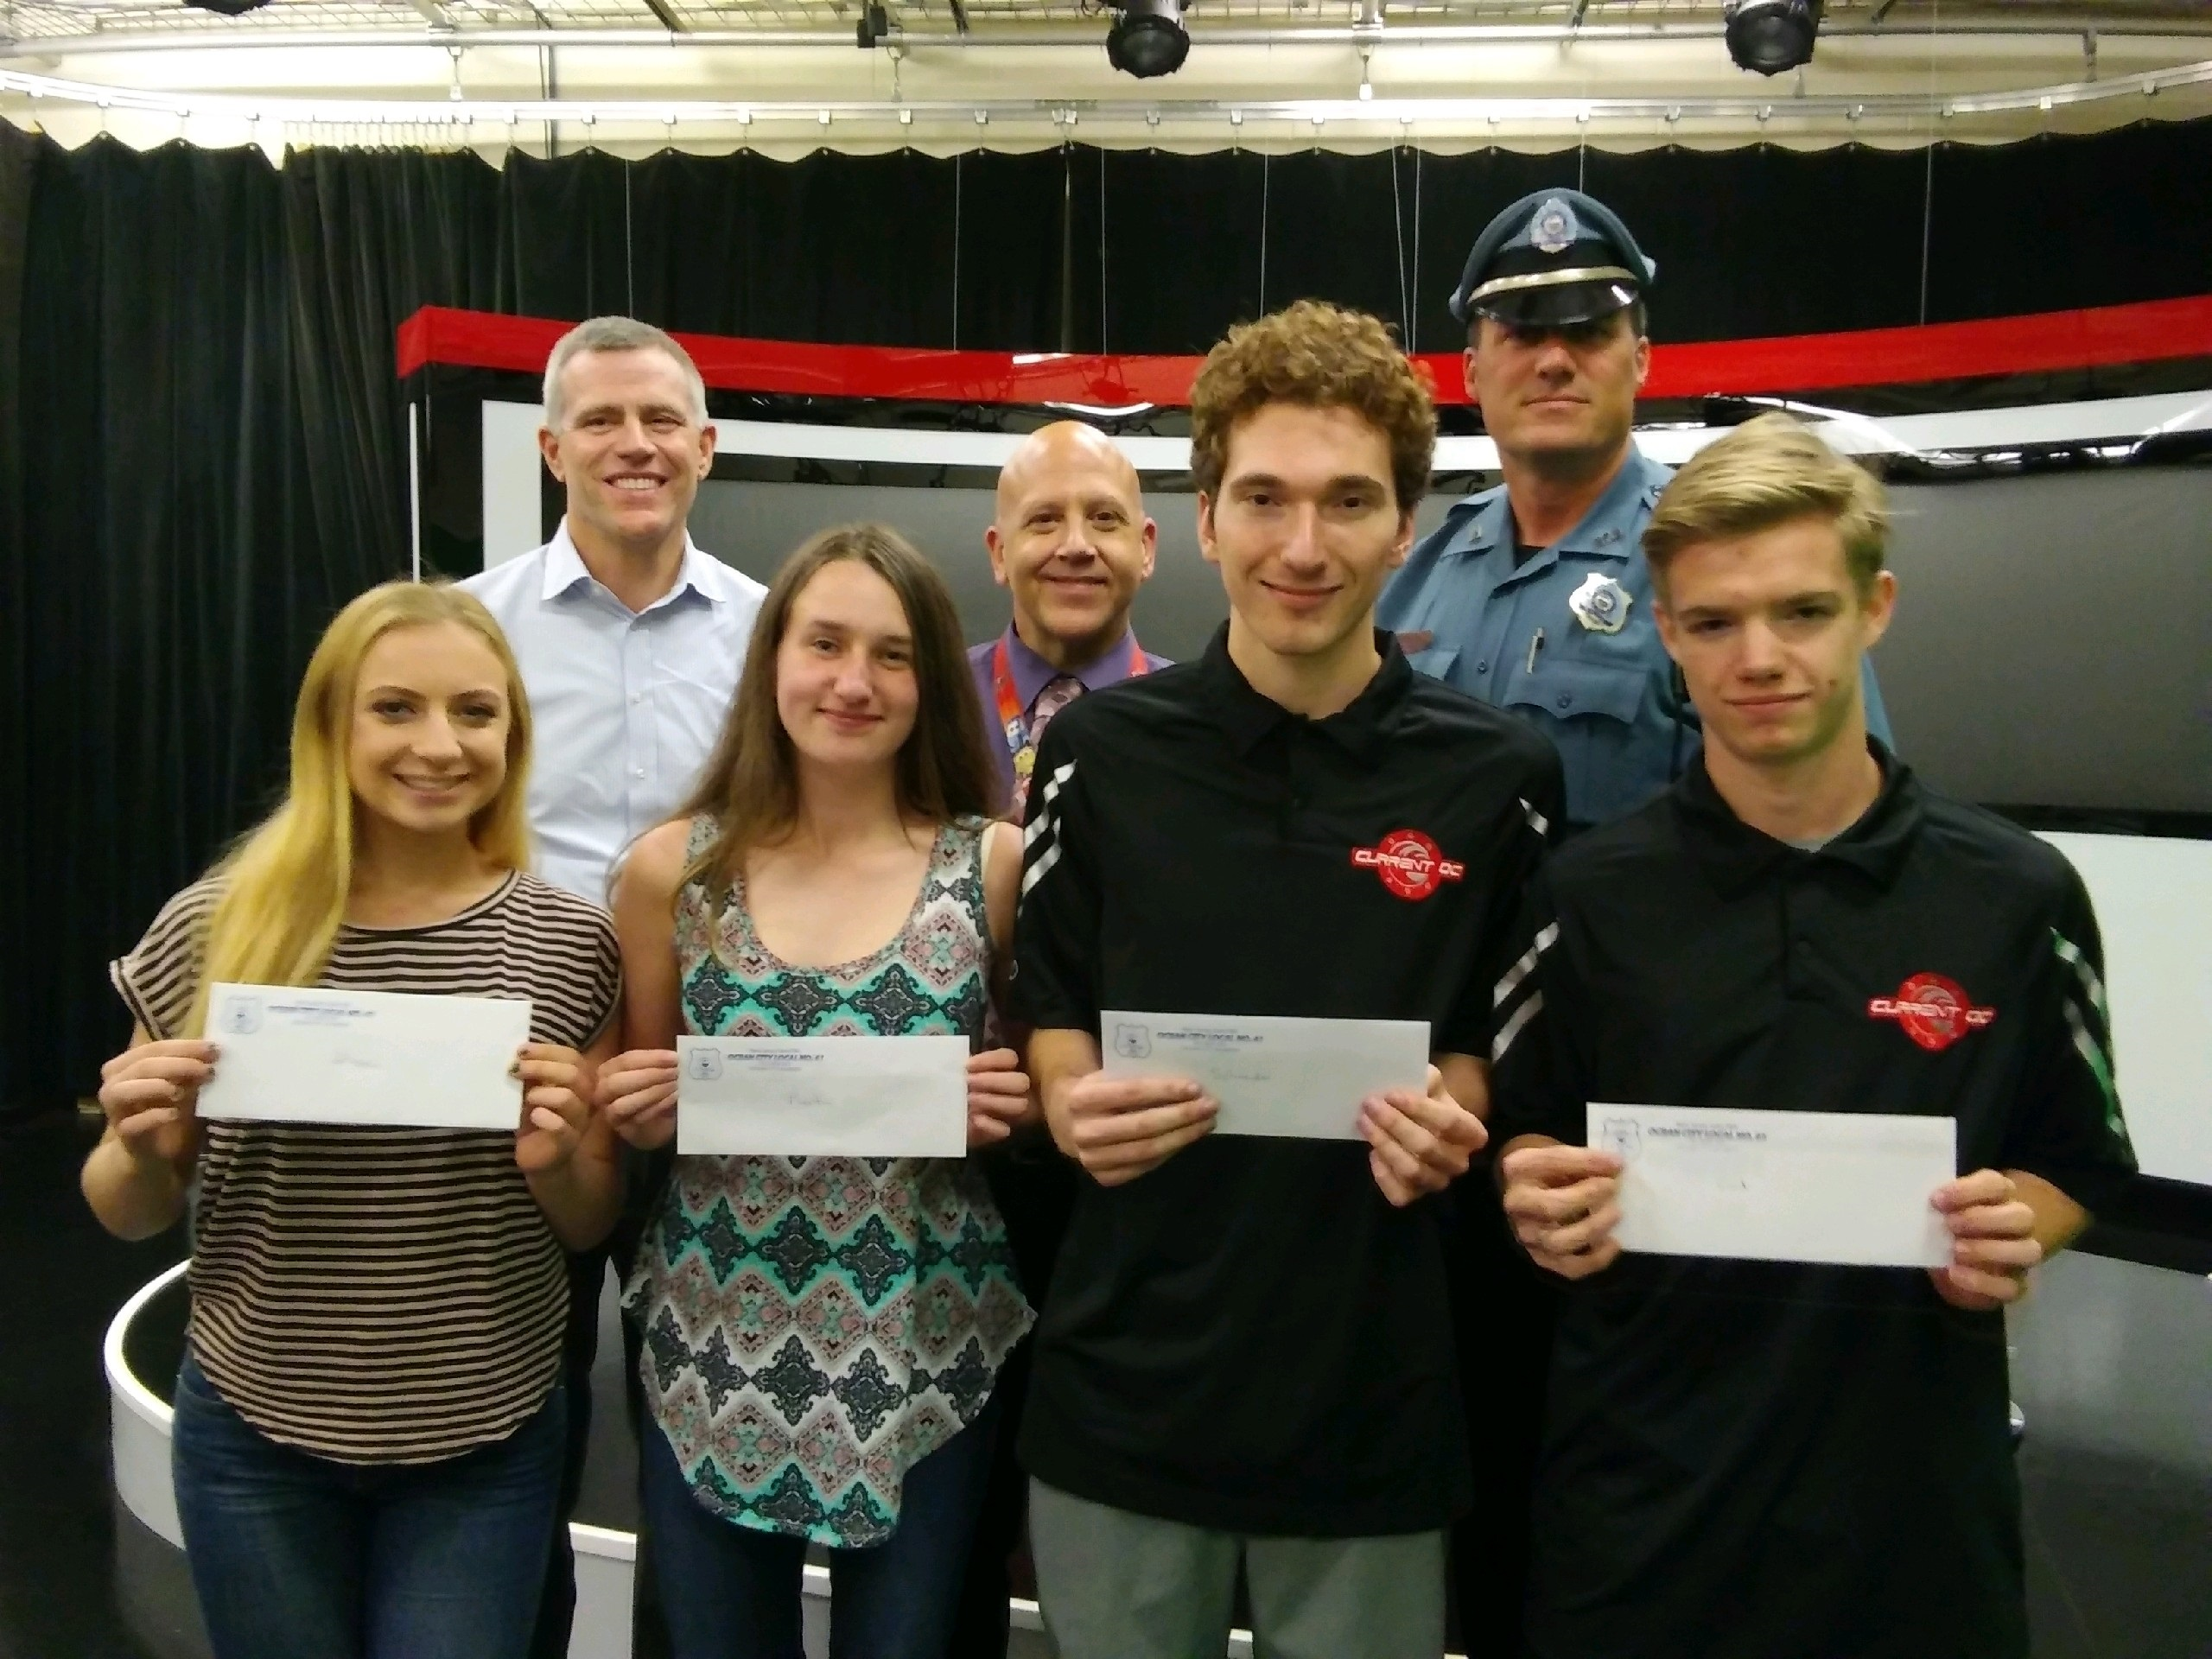 Ocean City High School Students Win Bike Safety Contest